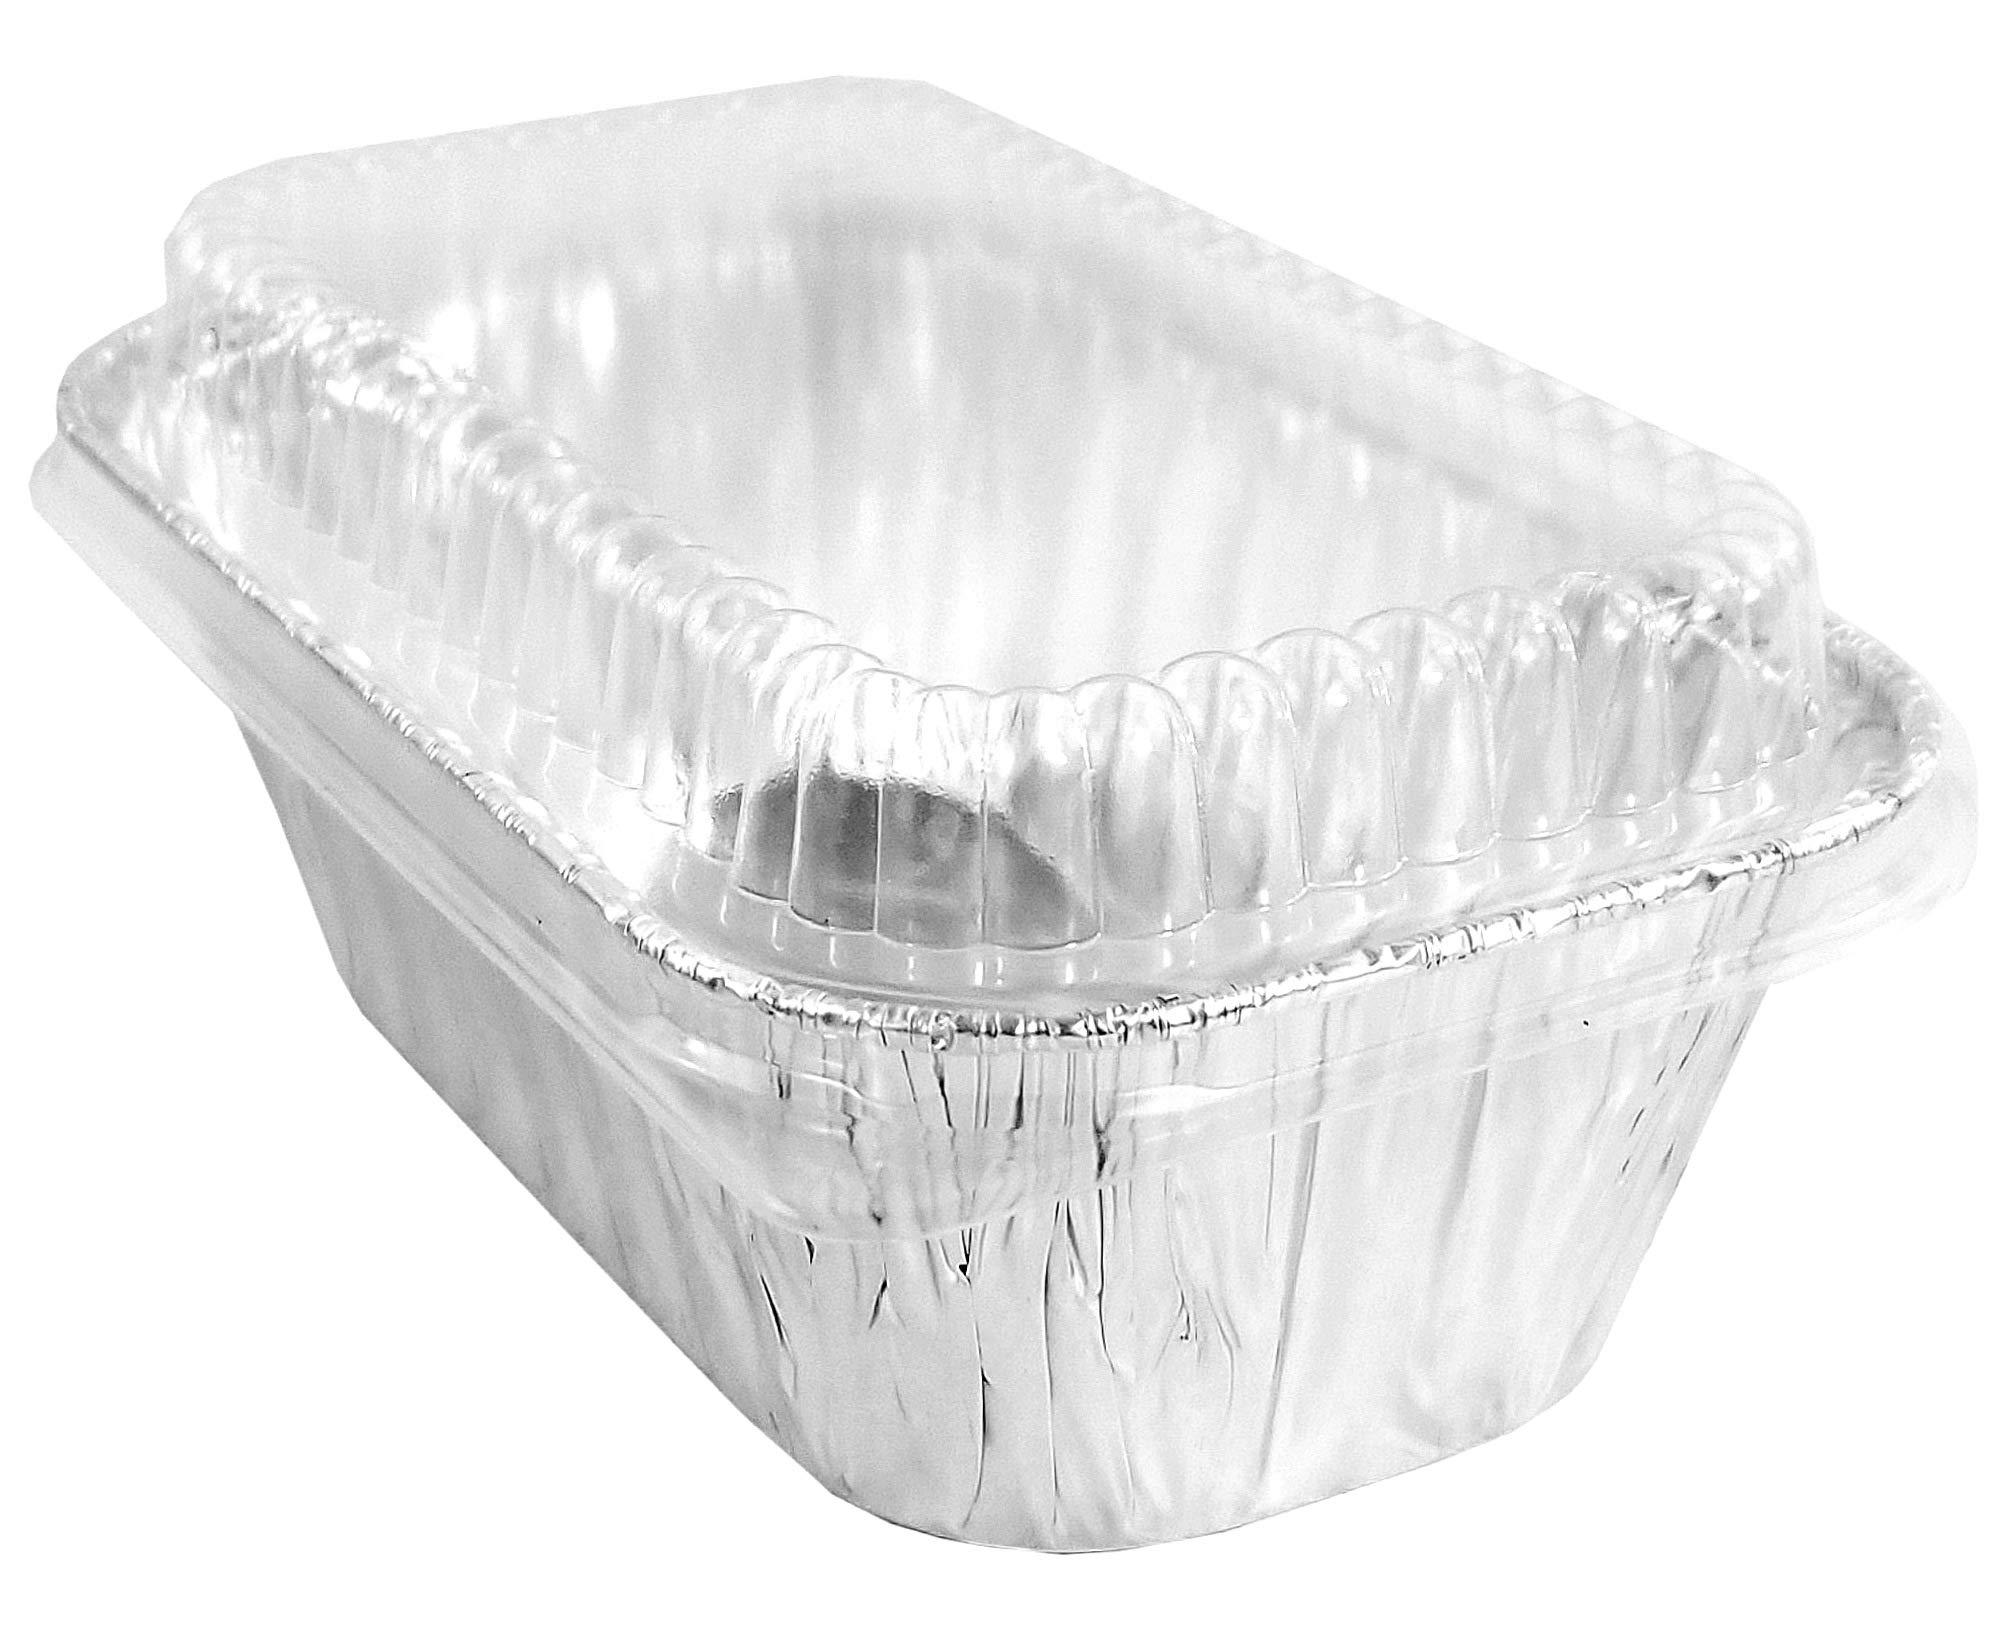 Pactogo Disposable 1 lb. Aluminum Foil Mini Loaf Pans with Clear Low Dome Lids (Pack of 400 Sets) by PACTOGO (Image #5)